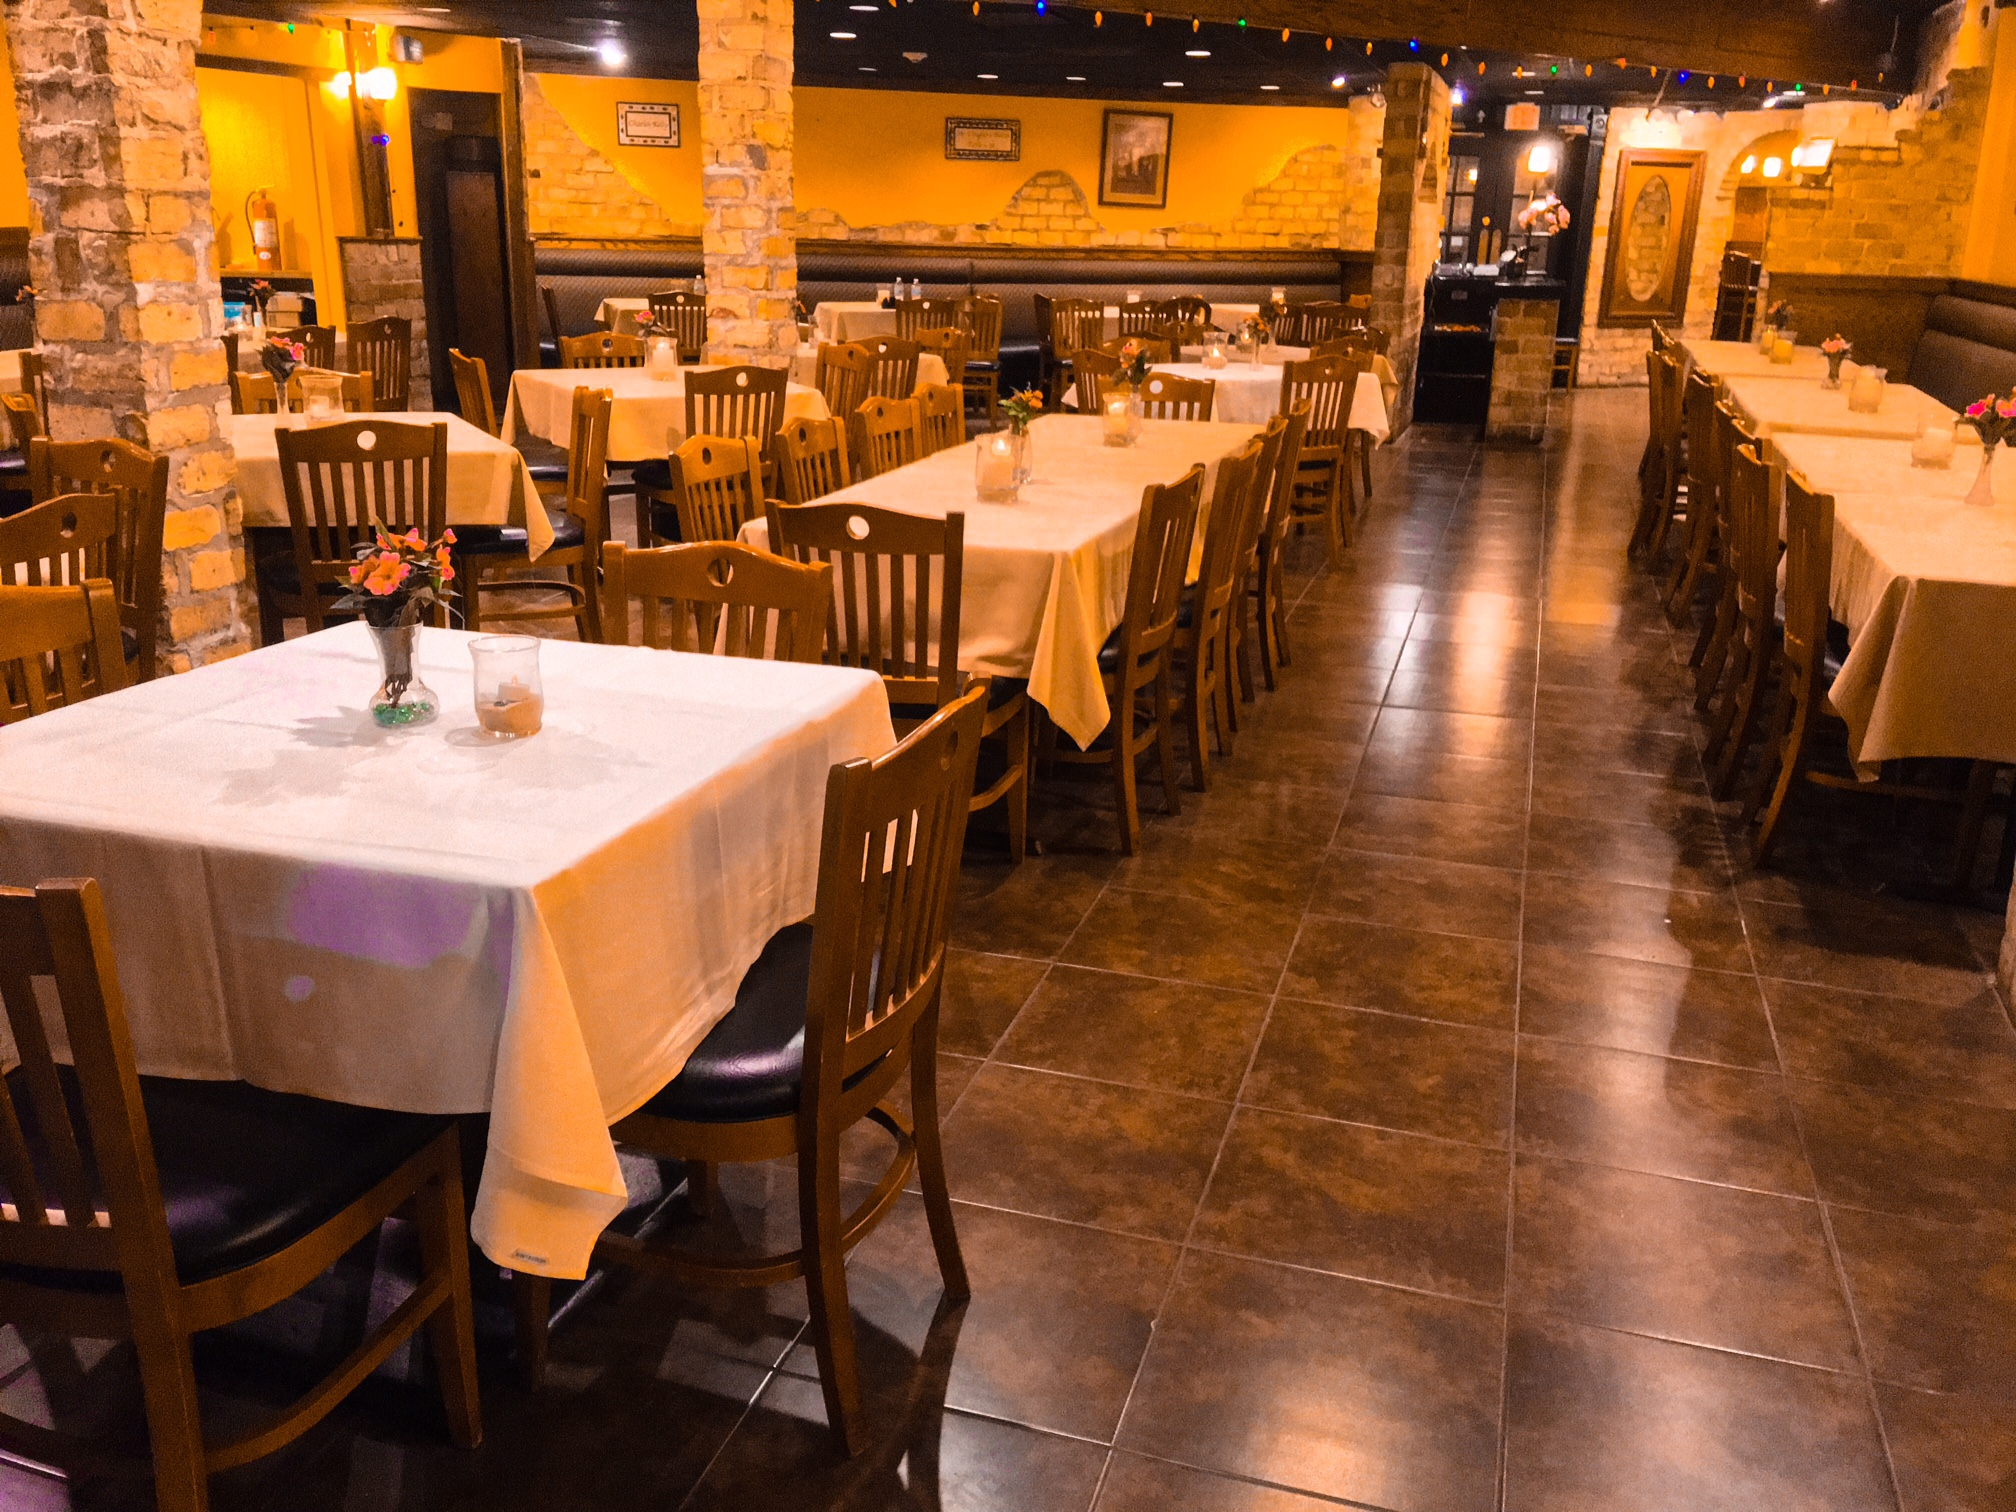 Niles Newest Indian Restaurant Specializes In Southern